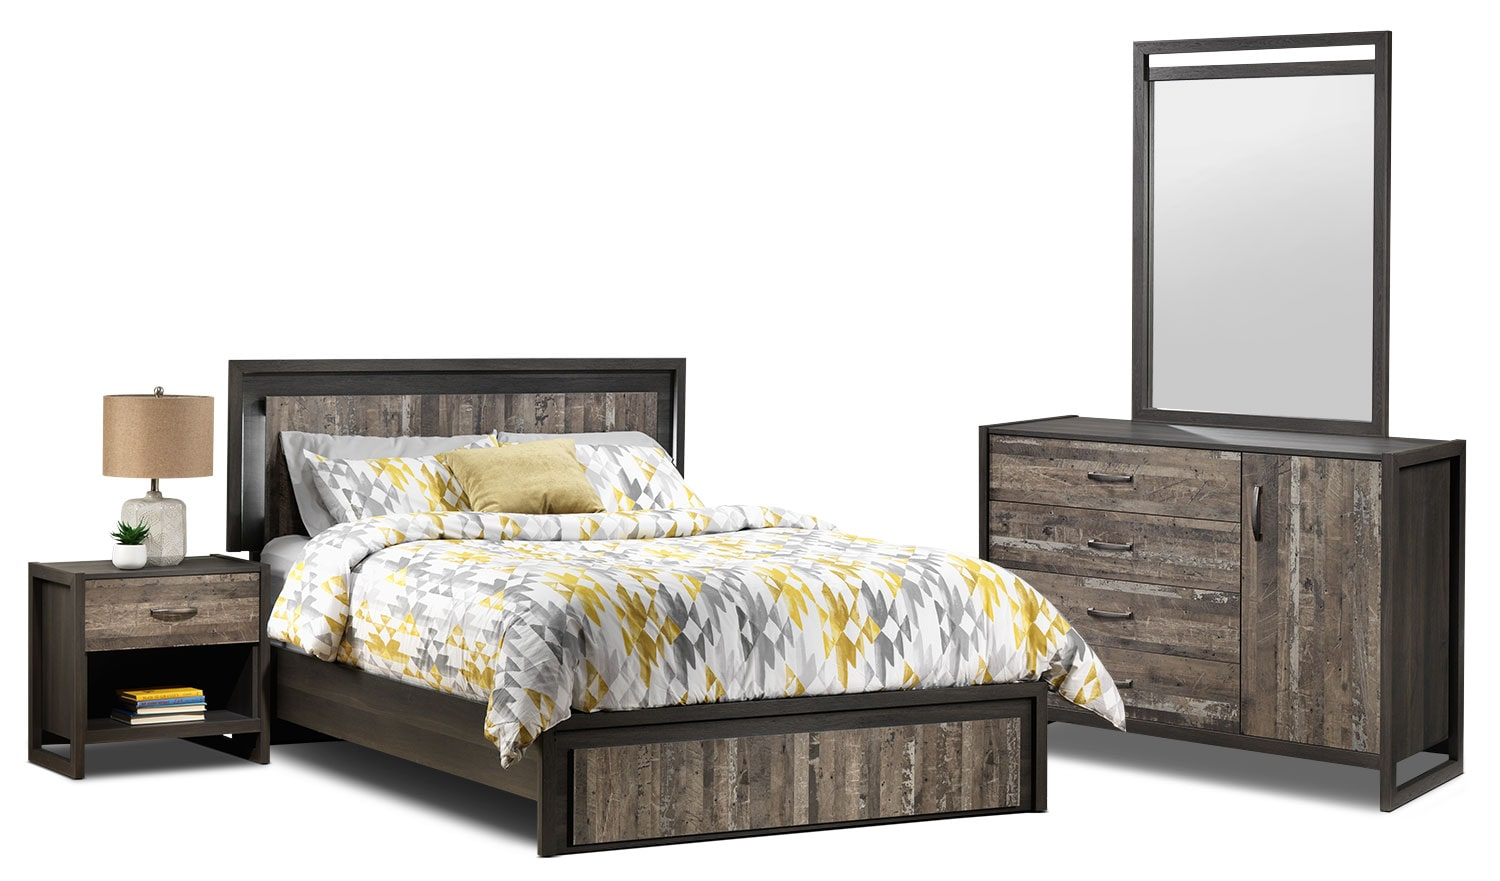 Bedroom Furniture Sets Tyler Tx Hudson 5 Piece Queen Bedroom Set Rustic Brown Leon39s